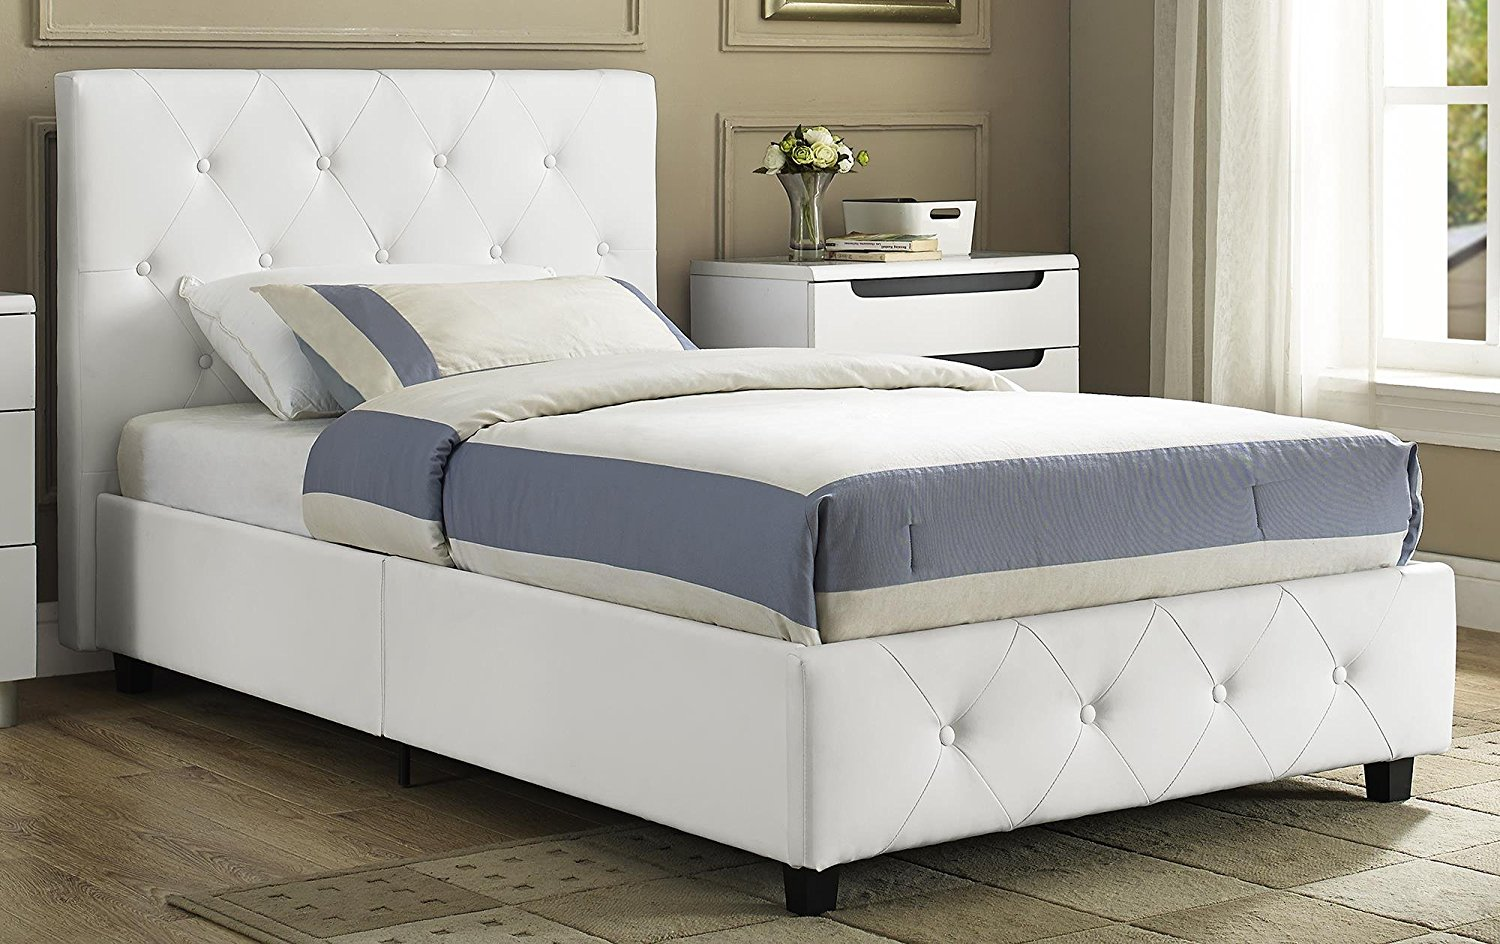 Dakota Platform Bed With Tufted Upholstery In Faux Leather